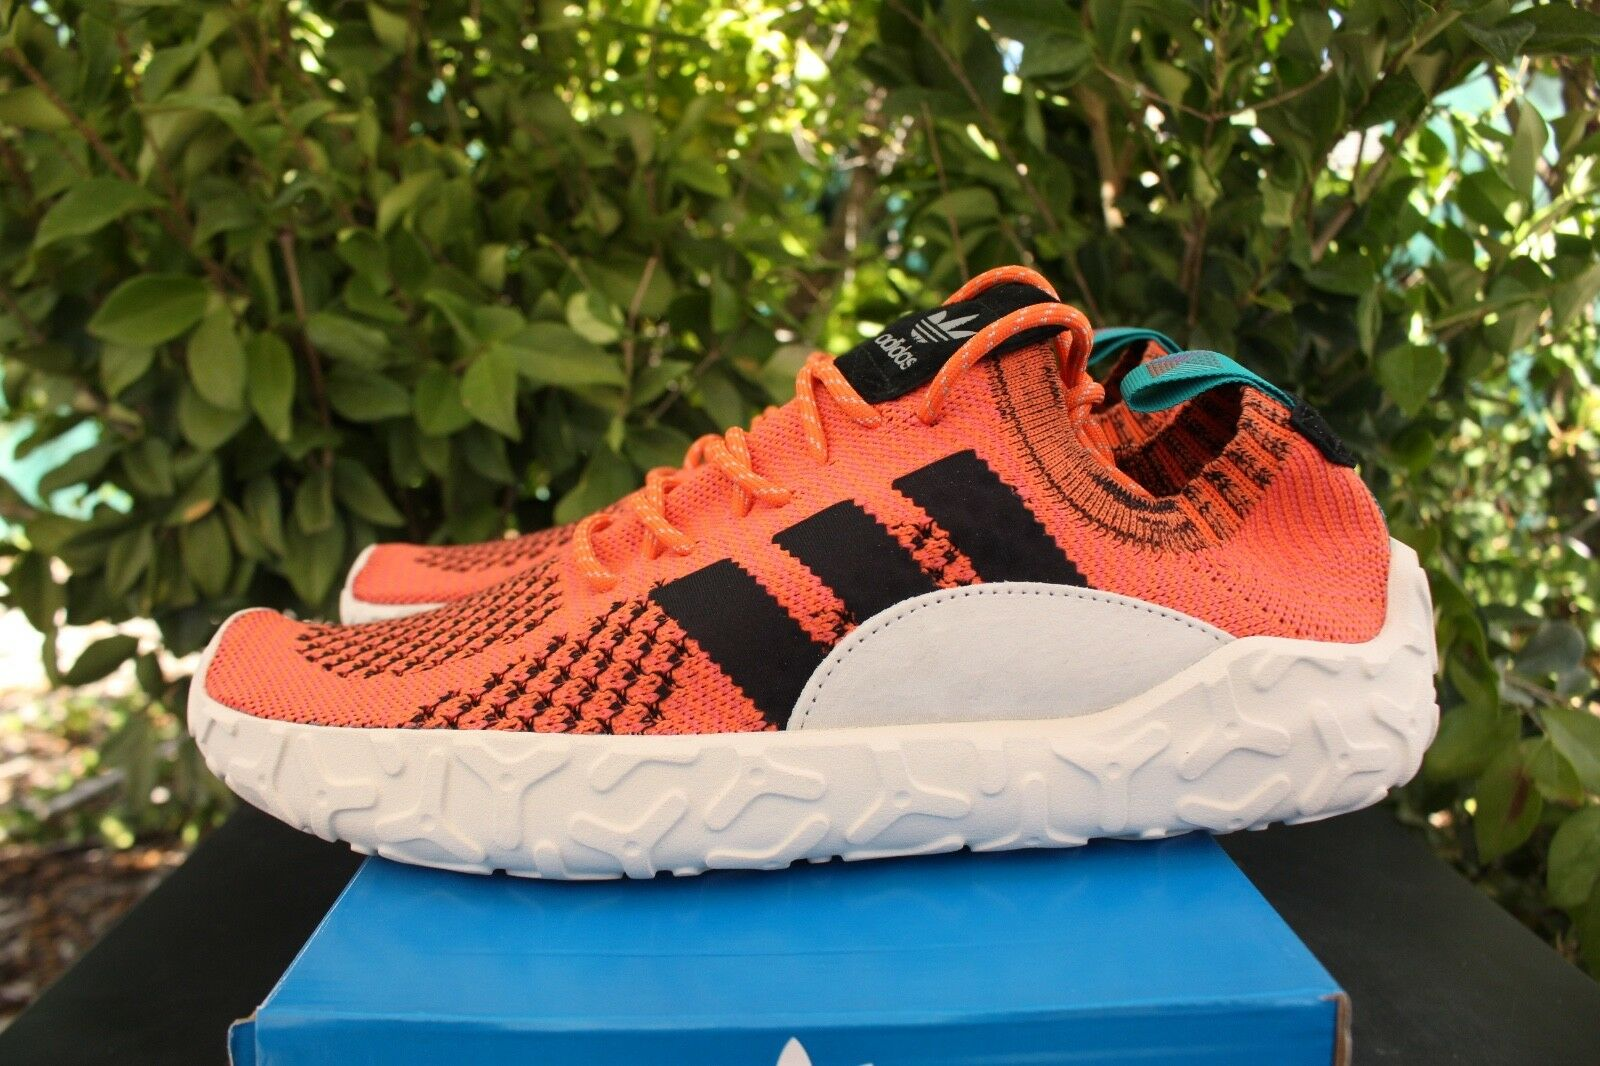 ADIDAS F 22 PK SZ 11 TRACE orange CORE BLACK WHITE PRIMEKNIT F 22 CQ3027